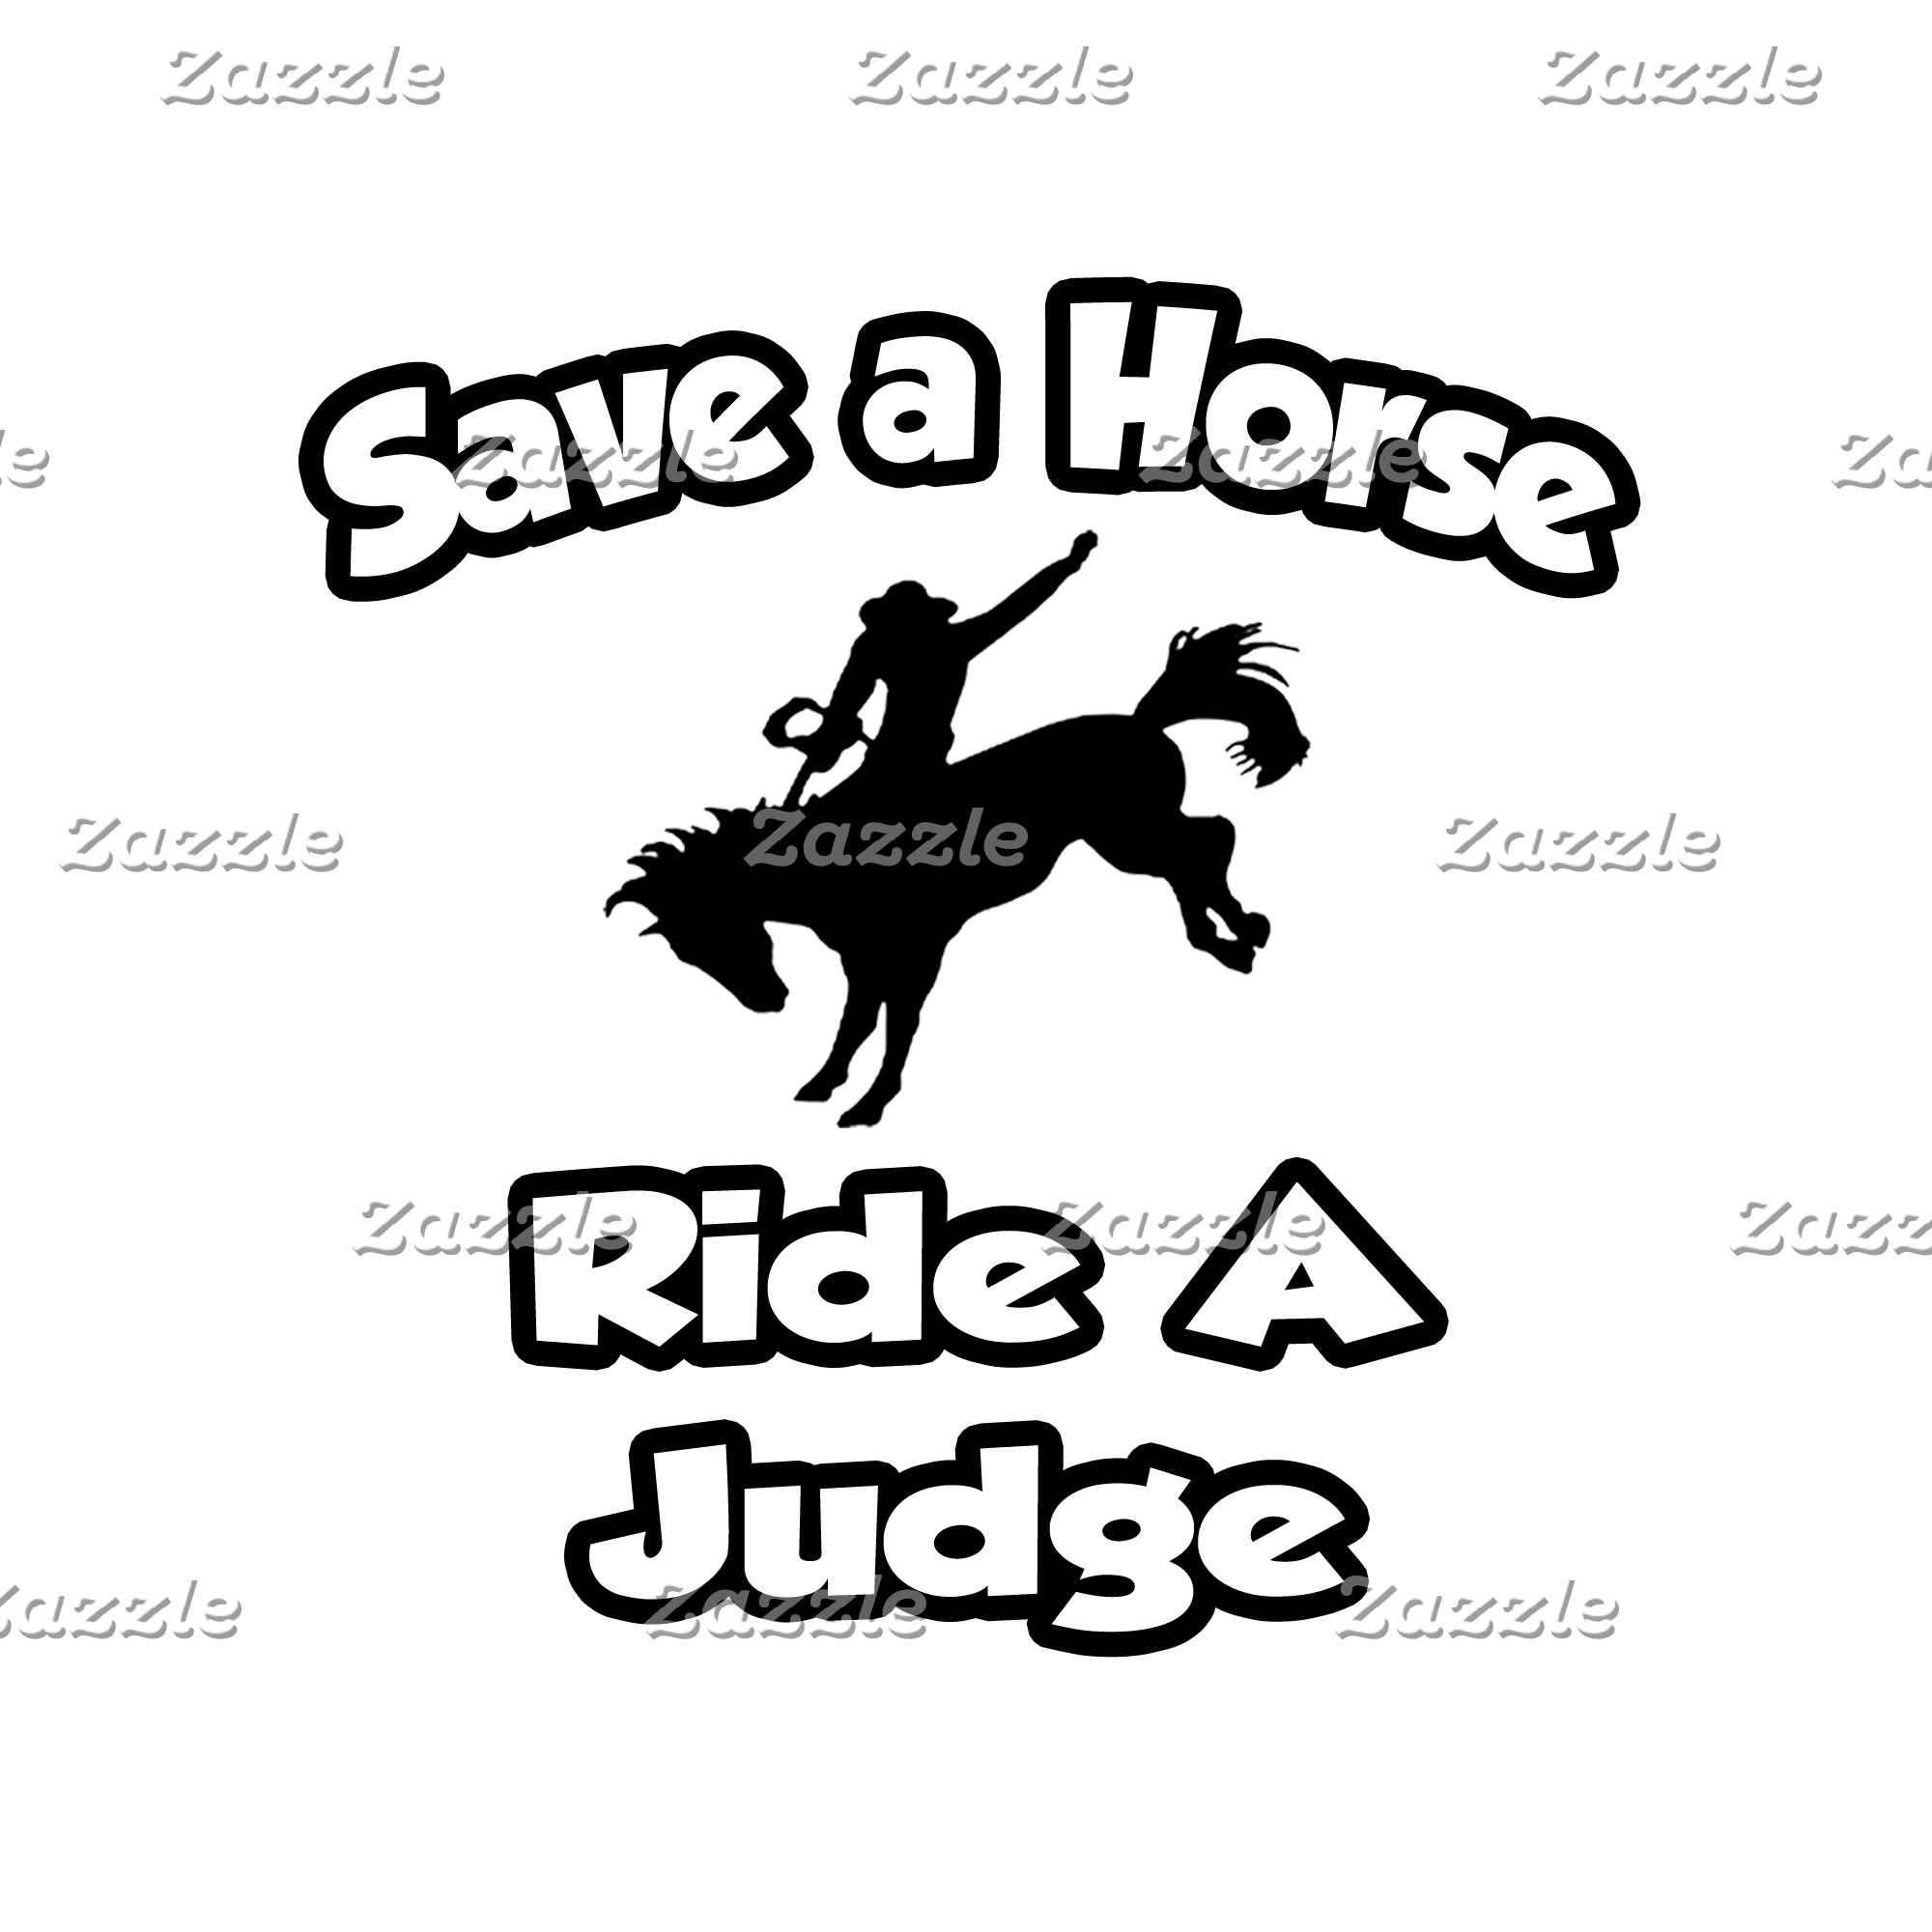 Save a Horse .. Ride a Judge